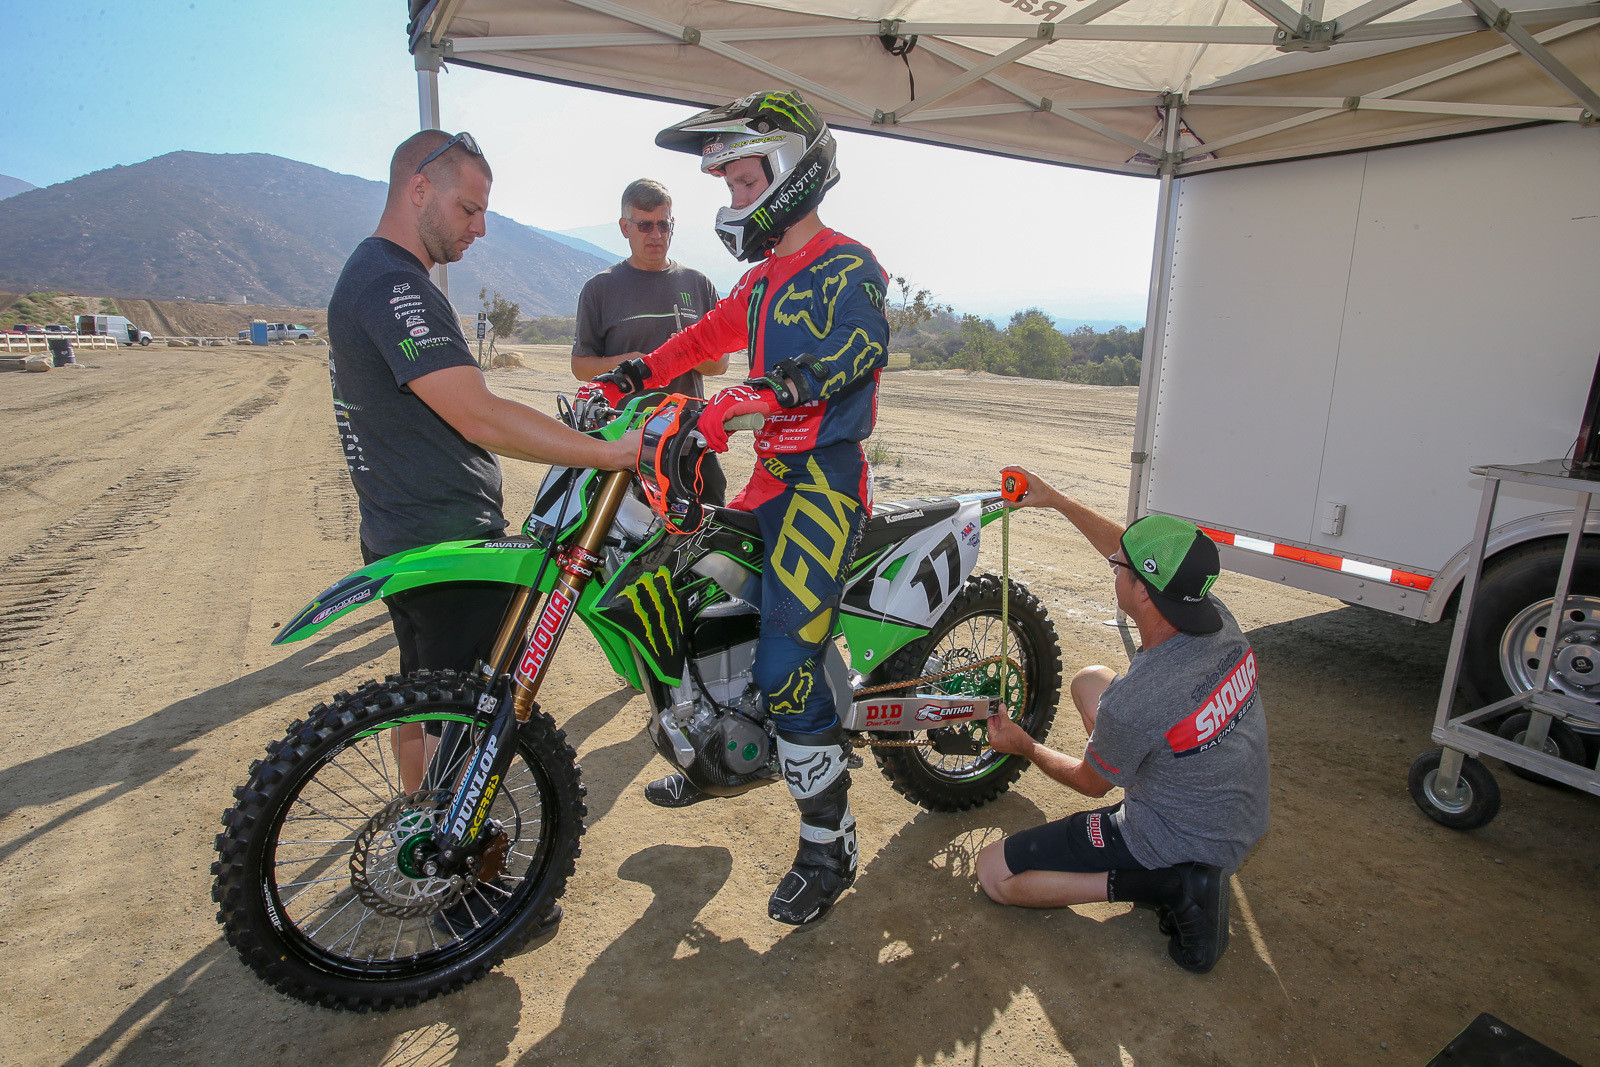 Justin Shantie will move along with Joey from the Monster Energy Pro Circuit Kawasaki squad over to Monster Energy Kawasaki, and spin the wrenches there from now on. Josh Grant's old mechanic, Travis Parry (who built up this bike), will be moving over to Team Green.